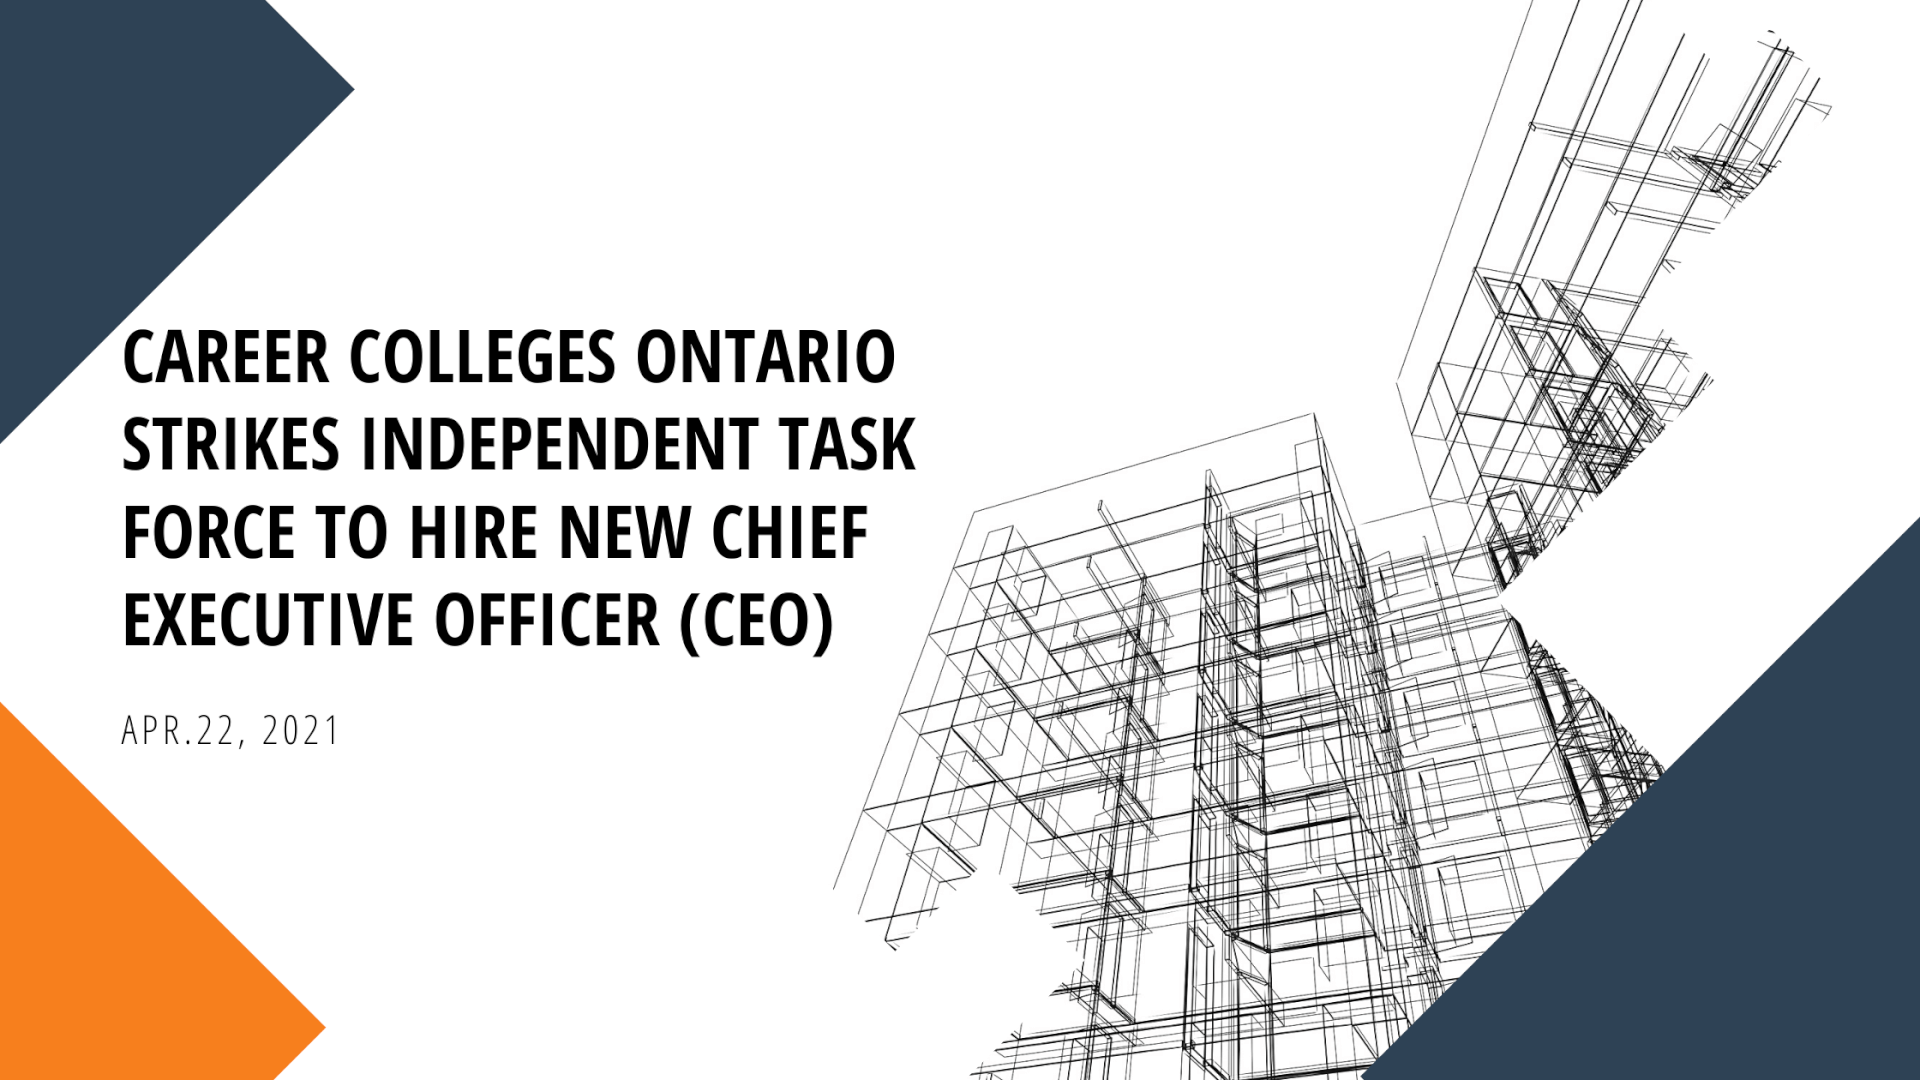 Career Colleges Ontario strikes independent task force to hire new chief executive officer (CEO)